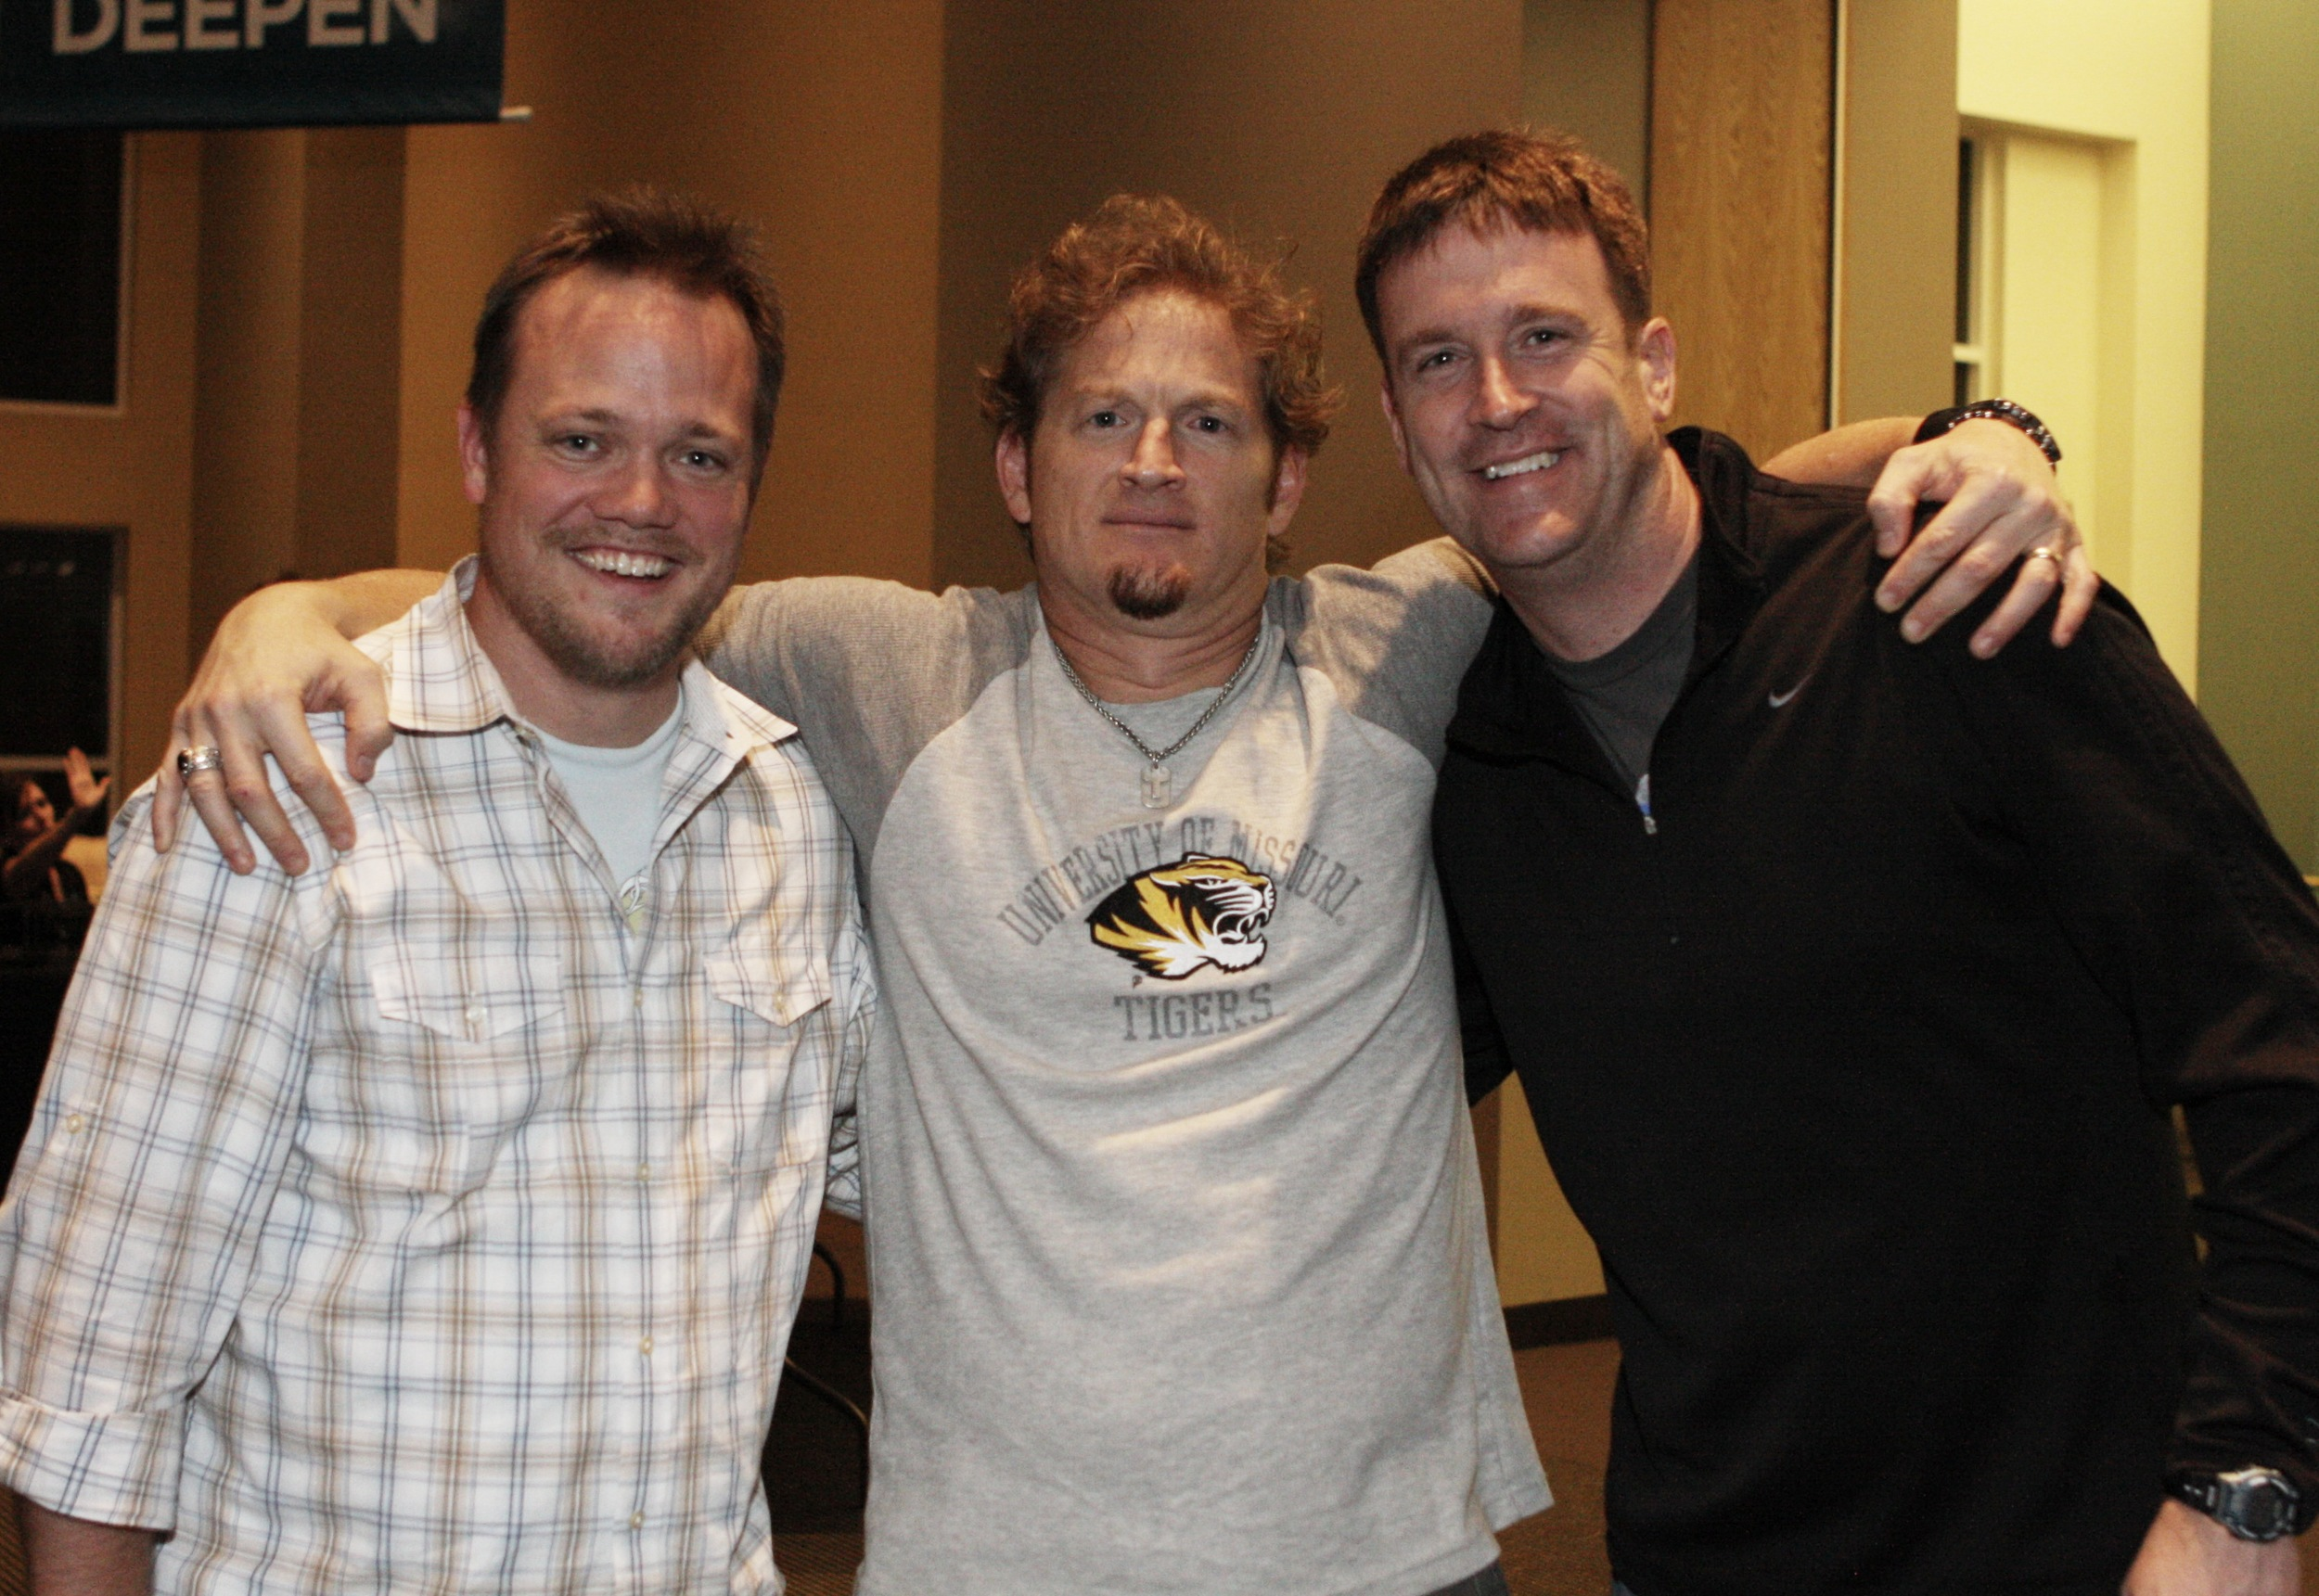 Here are Rob and Braun with Tim Hawkins.